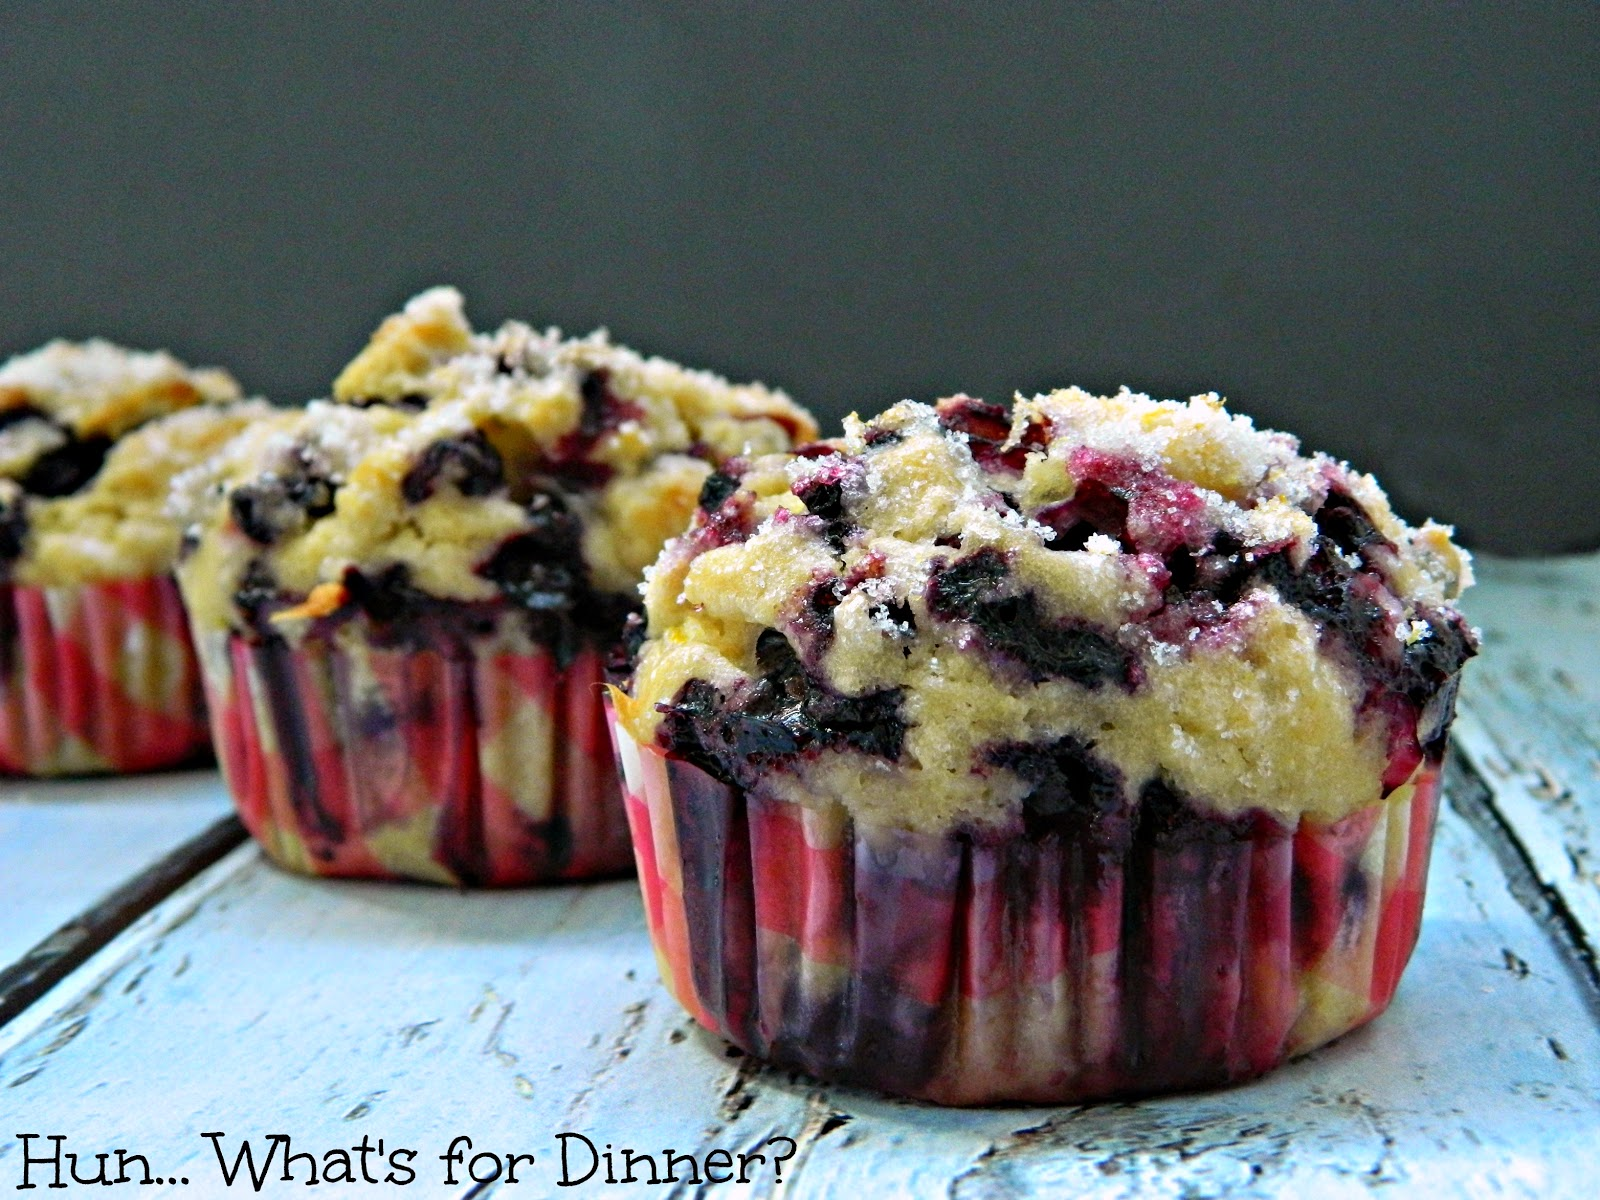 Hun... What's for Dinner? Blueberry Muffins